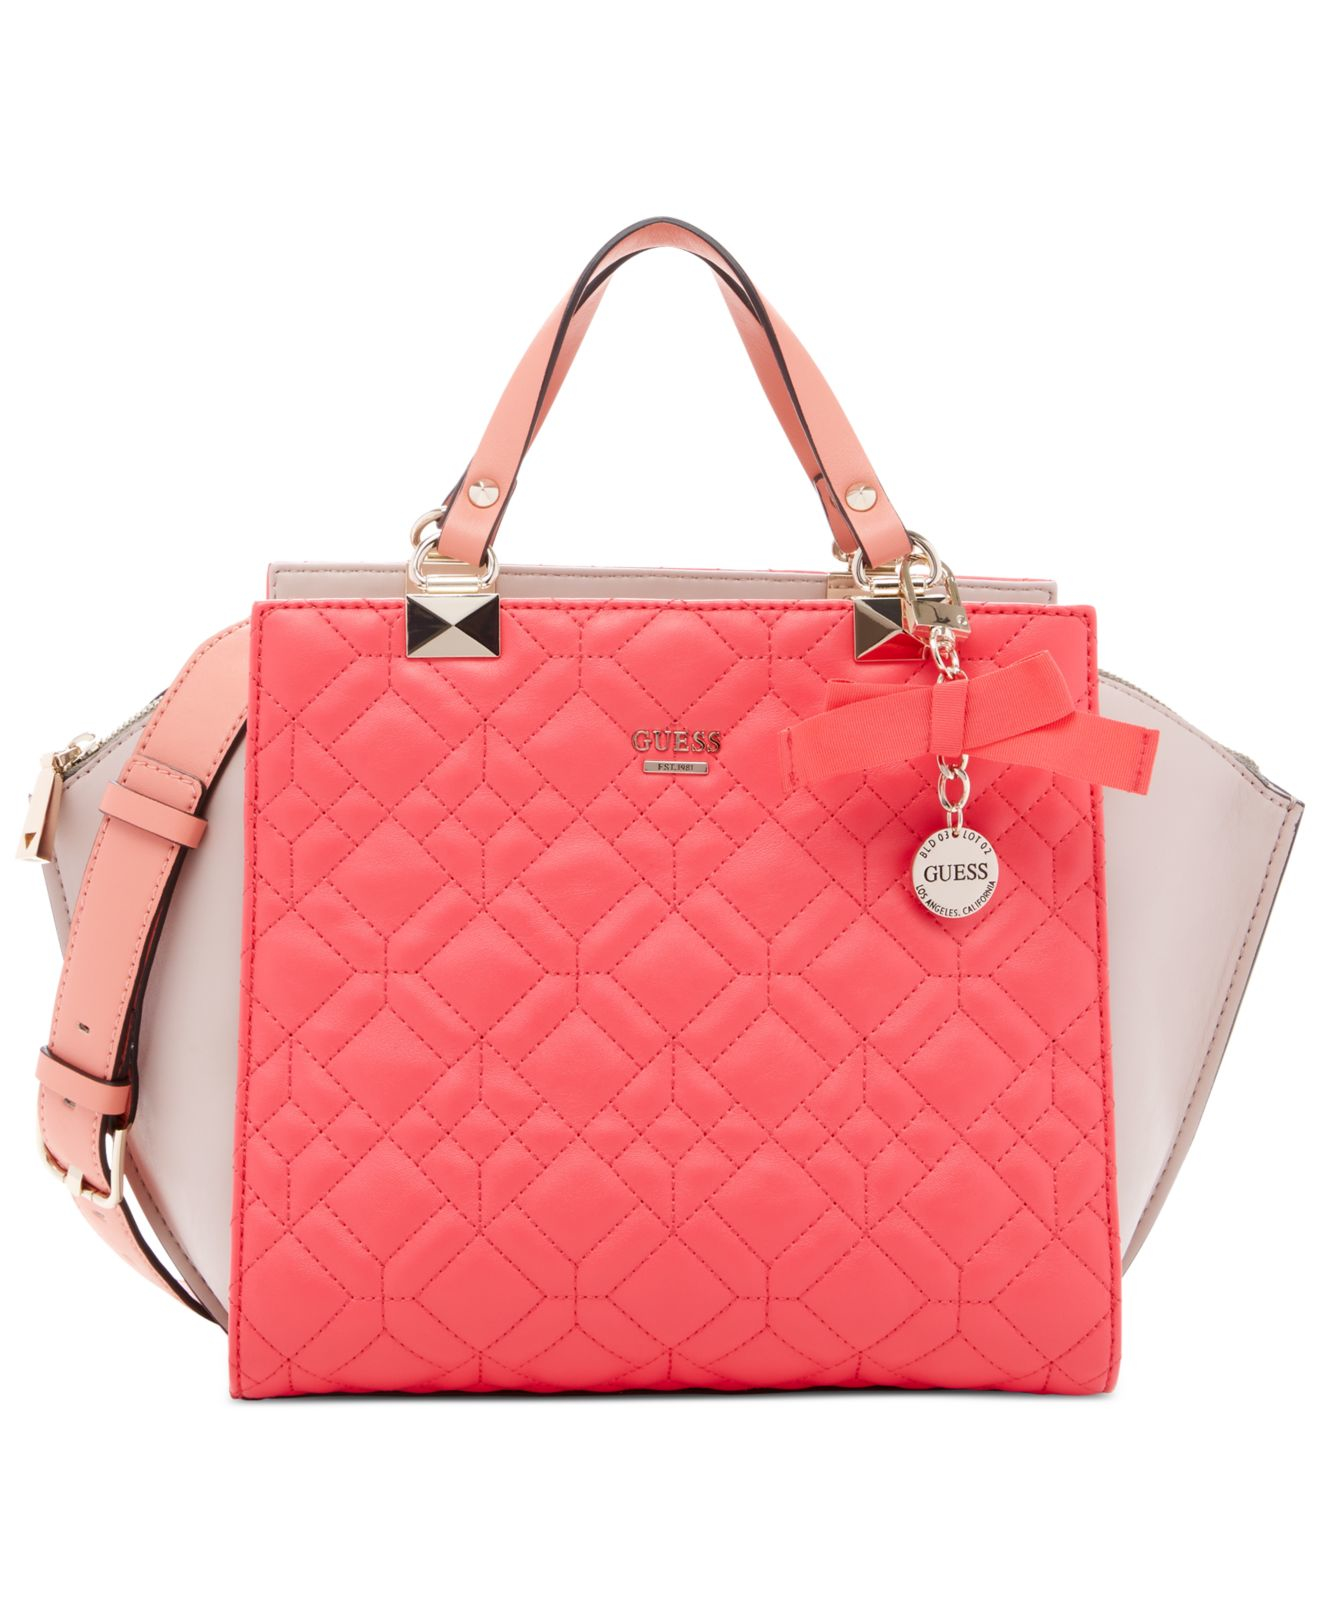 4f1d69cc5132 Lyst - Guess Ines Satchel in Pink